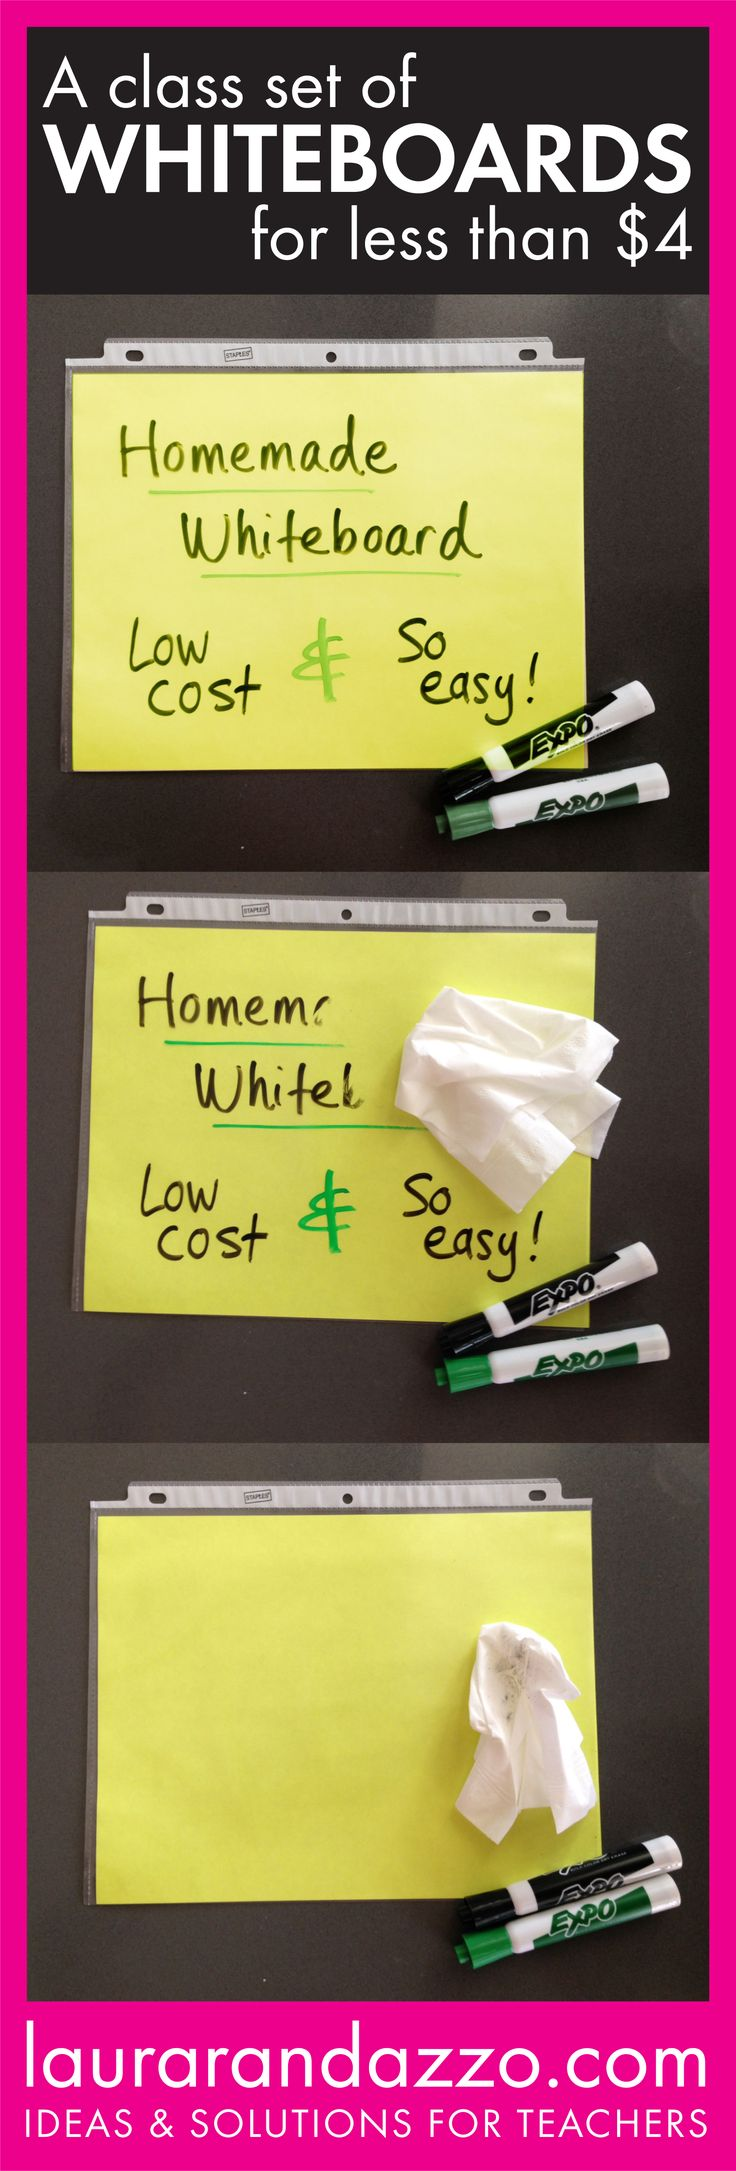 Love this cheap and easy solution for classroom whiteboards. I also put place value charts, tens frames, and so much more in these!